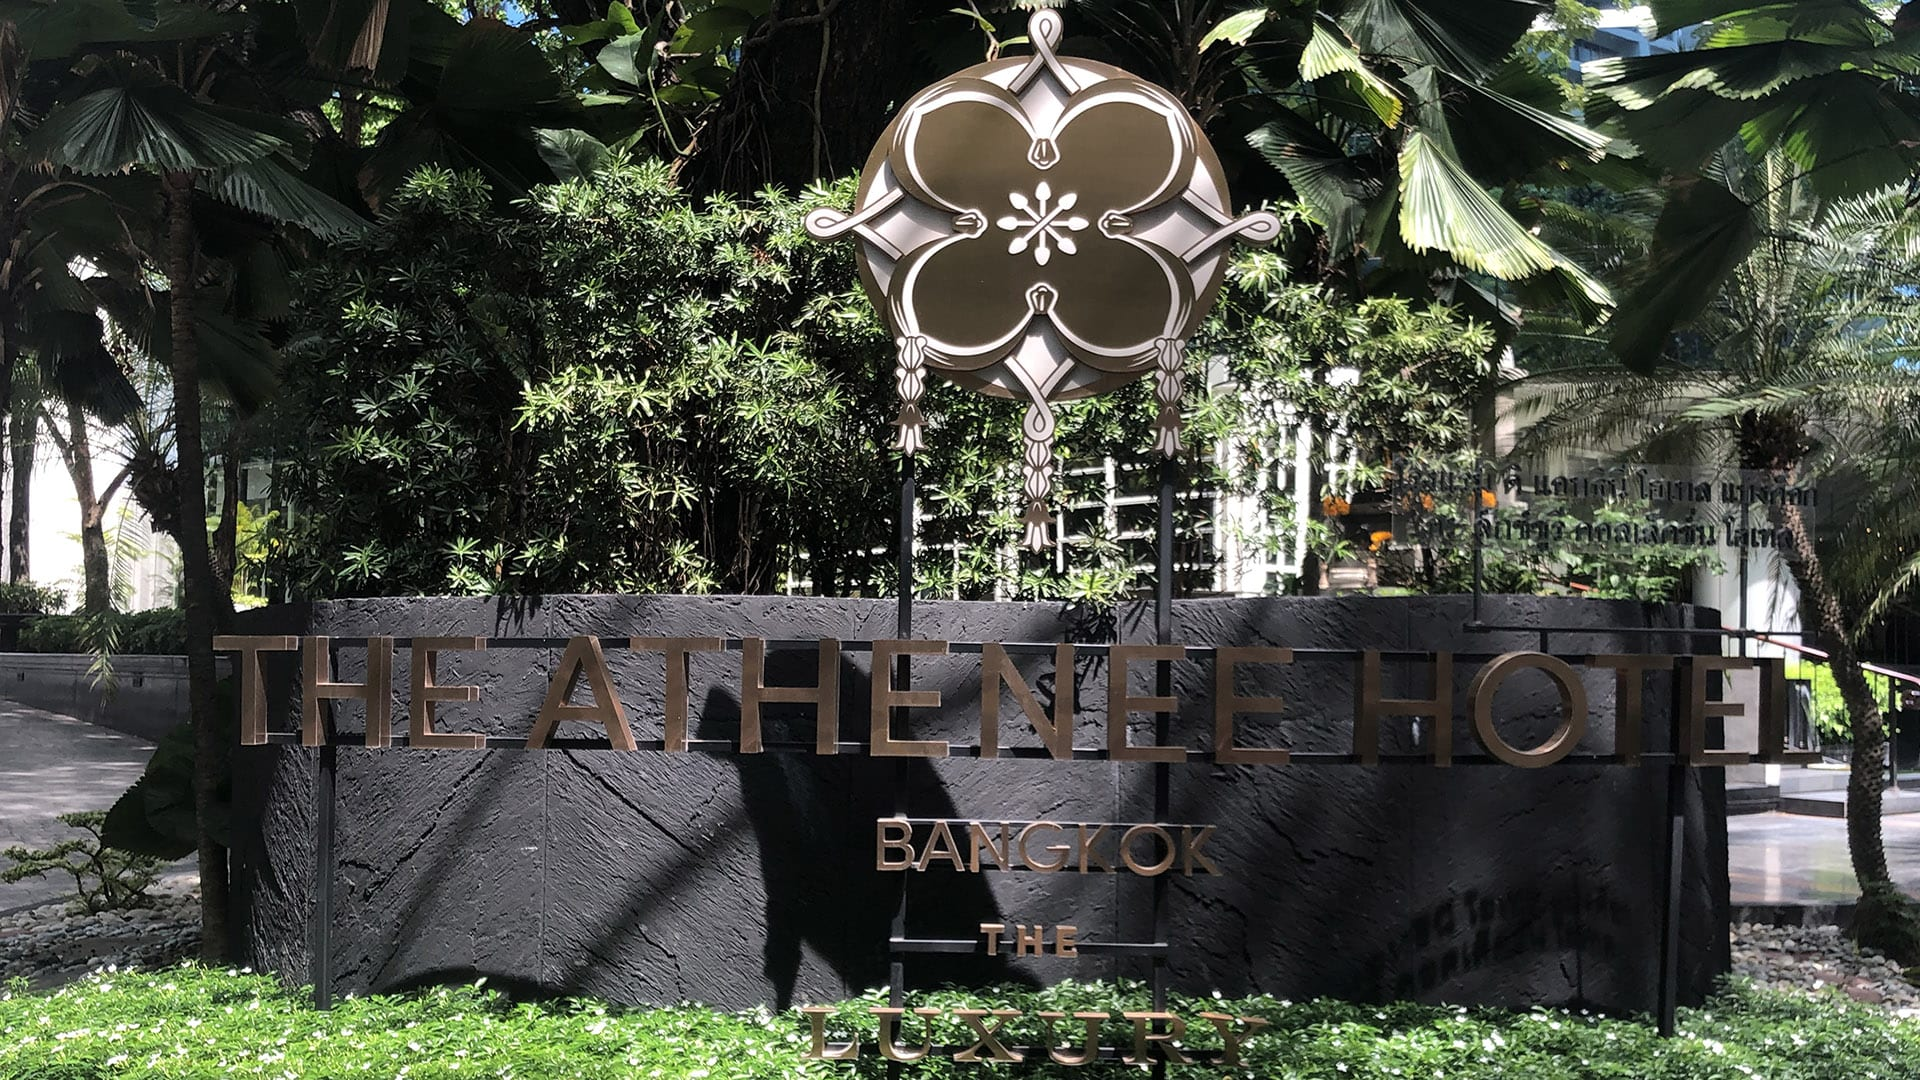 The Athenee Hotel, located on the grounds of former Kandhavas Palace